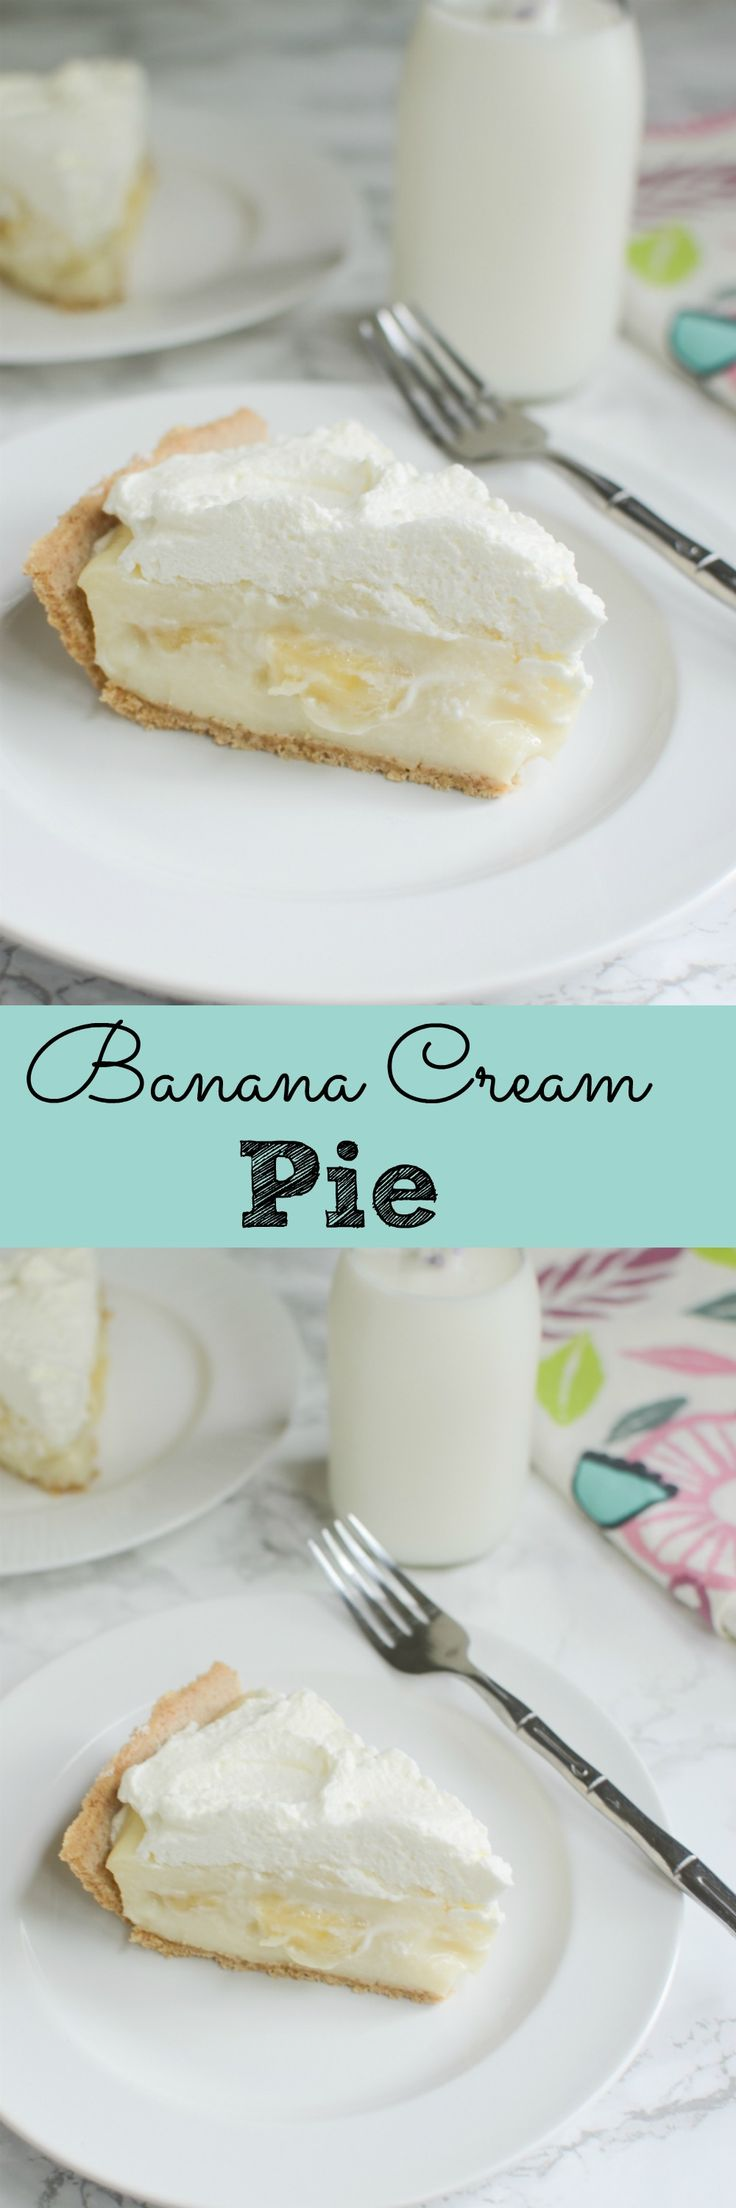 Banana Cream Pie - this no bake pie is the perfect summer dessert! Layers of vanilla custard, sliced bananas, and whipped cream in a graham cracker crust. So delicious!